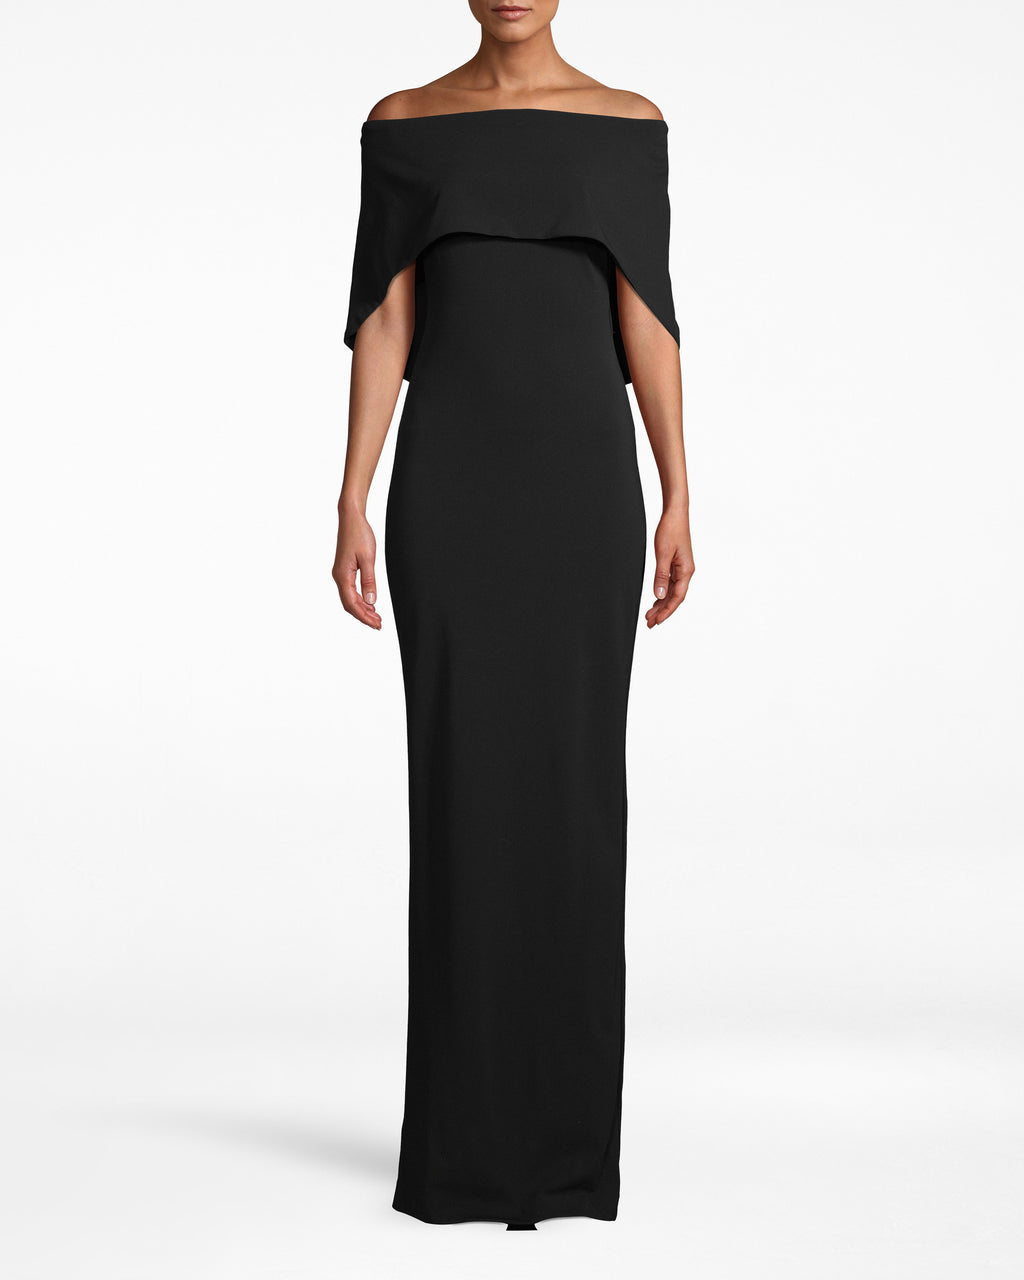 CF10307 - STRUCTURED HEAVY JERSEY CAPE GOWN - dresses - long - SERIOUSLY STRIKING. THIS OFF THE SHOULDER GOWN HASA CAPE TOP WITH A SKIRT THAT HITS FLOOR LENGTH. THE STRUCTURED HEAVY JERSEY MATERIAL WILL KEEP YOUSECURE ON THE DANCE FLOOR ALL NIGHT LONG. PAIR WITH HEELS AND A FUN CLUTCH.